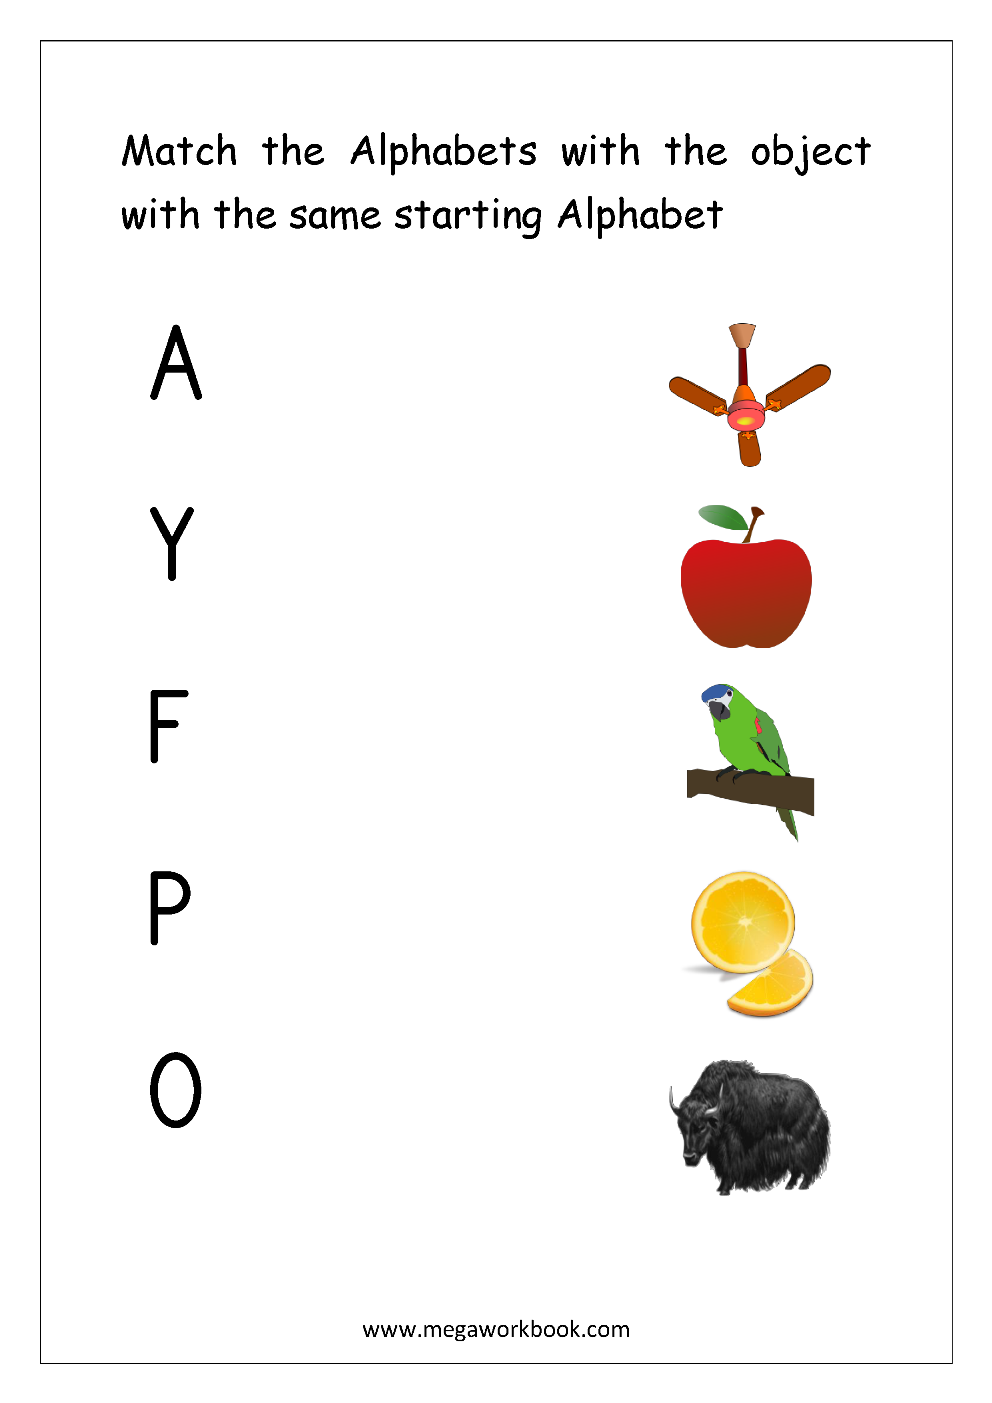 Worksheet Match Object With The Starting Alphabet Capital Letters Free English Worksheets Alphabet Matching Matching Worksheets [ 1403 x 992 Pixel ]